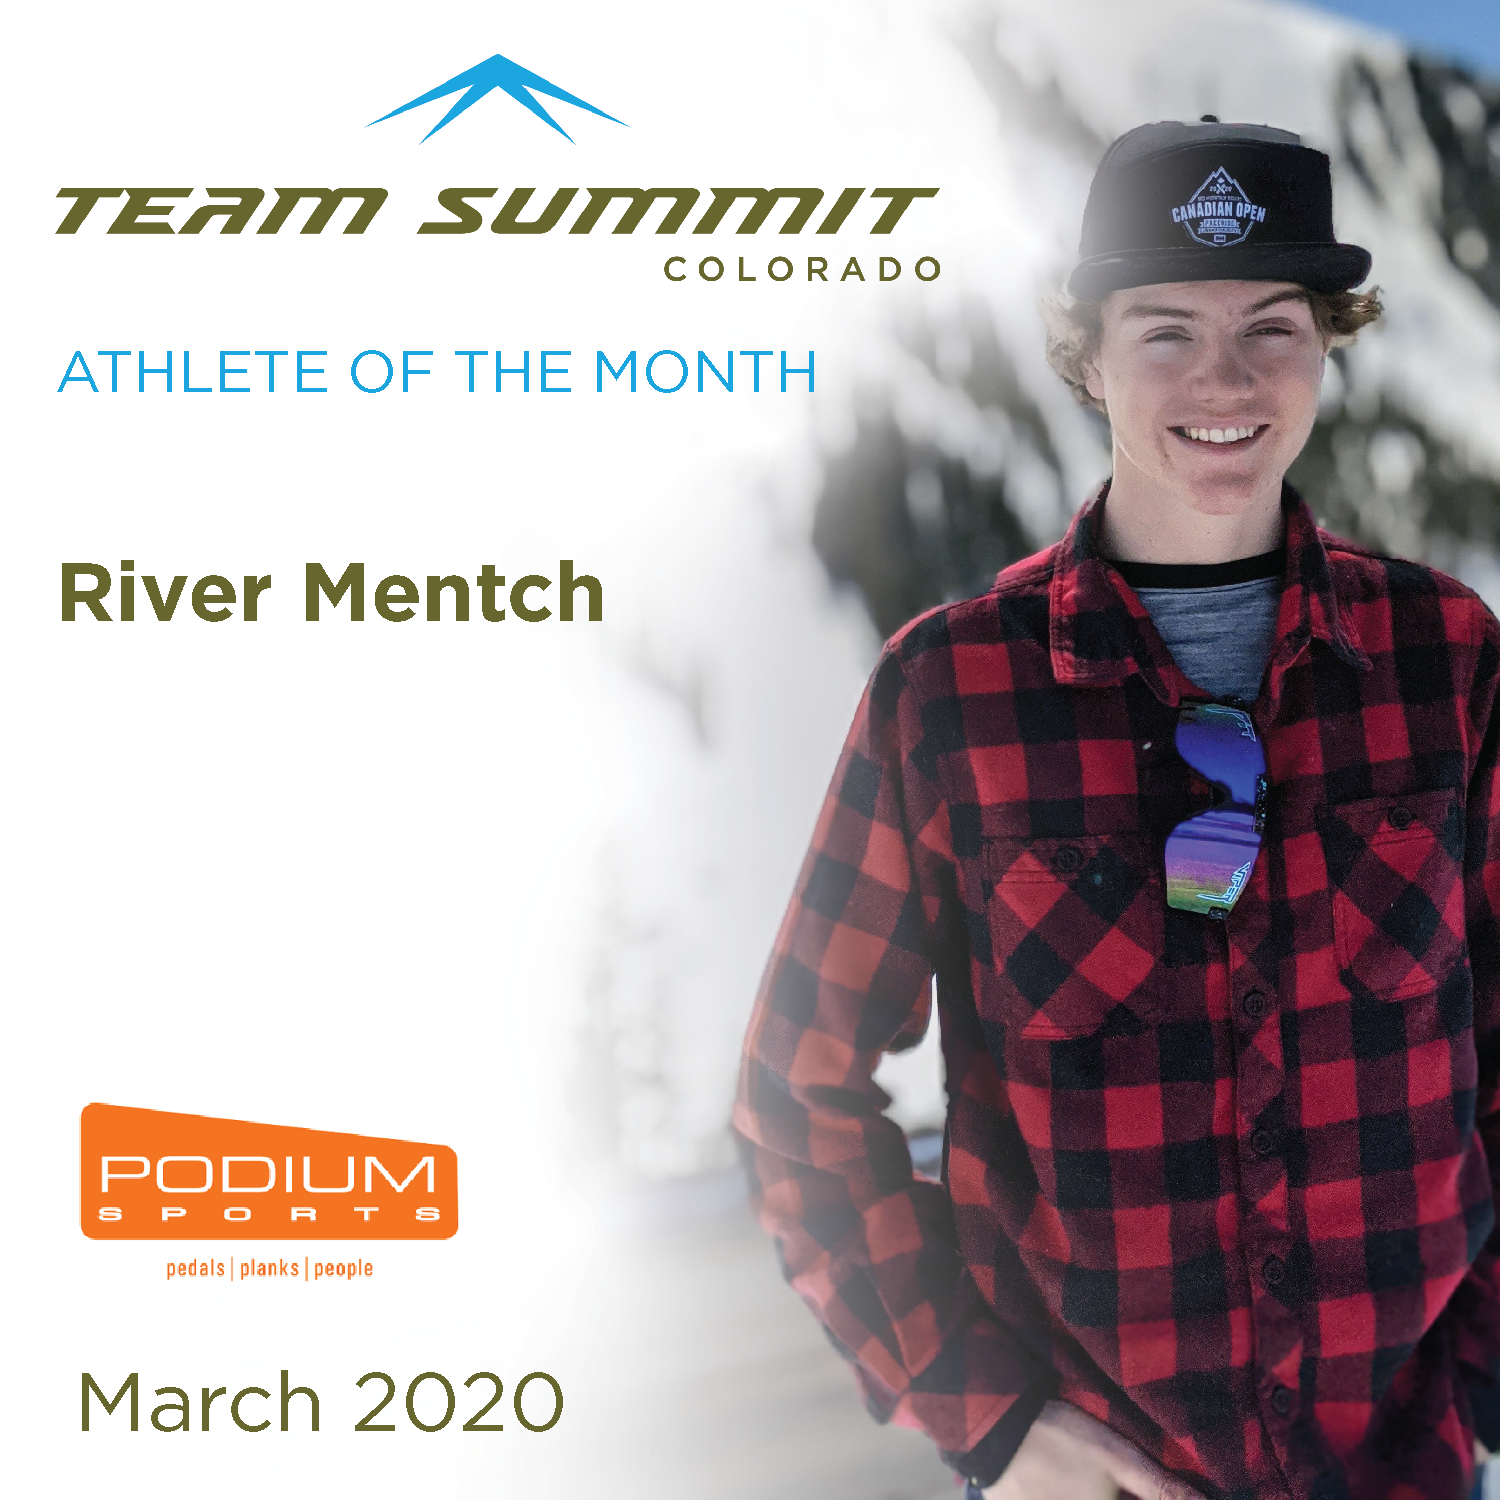 ATHLETE_OF_THE_MONTH_River_Mentch-01.png